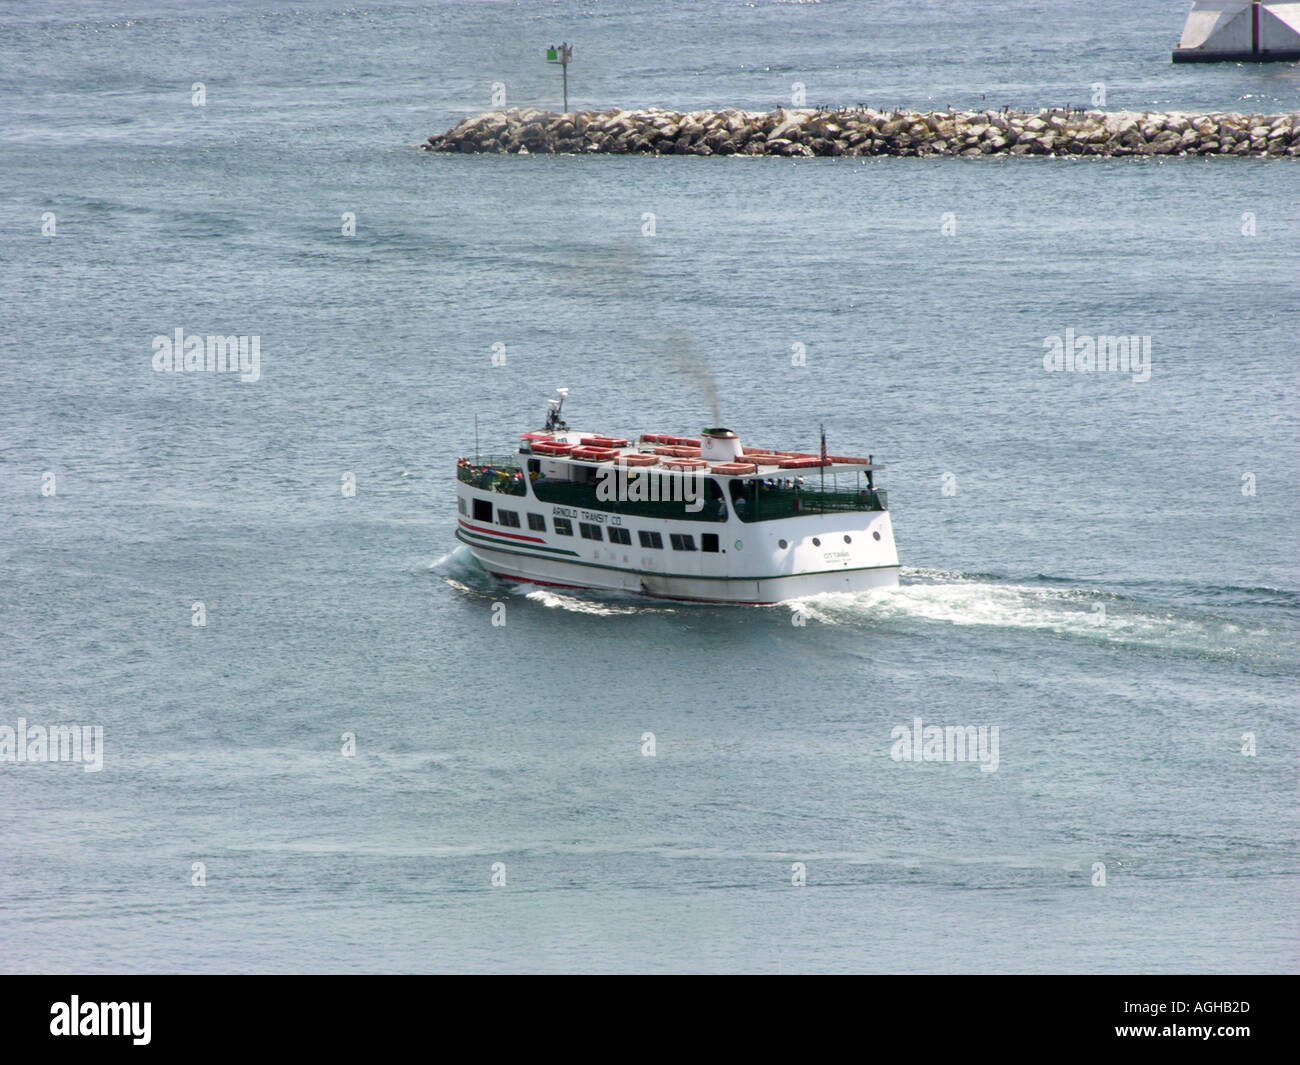 High seed boats transports tourists to Mackinaw mackinac Island in Michigan between the Upper and Lower Peninsula in Lake Huron - Stock Image